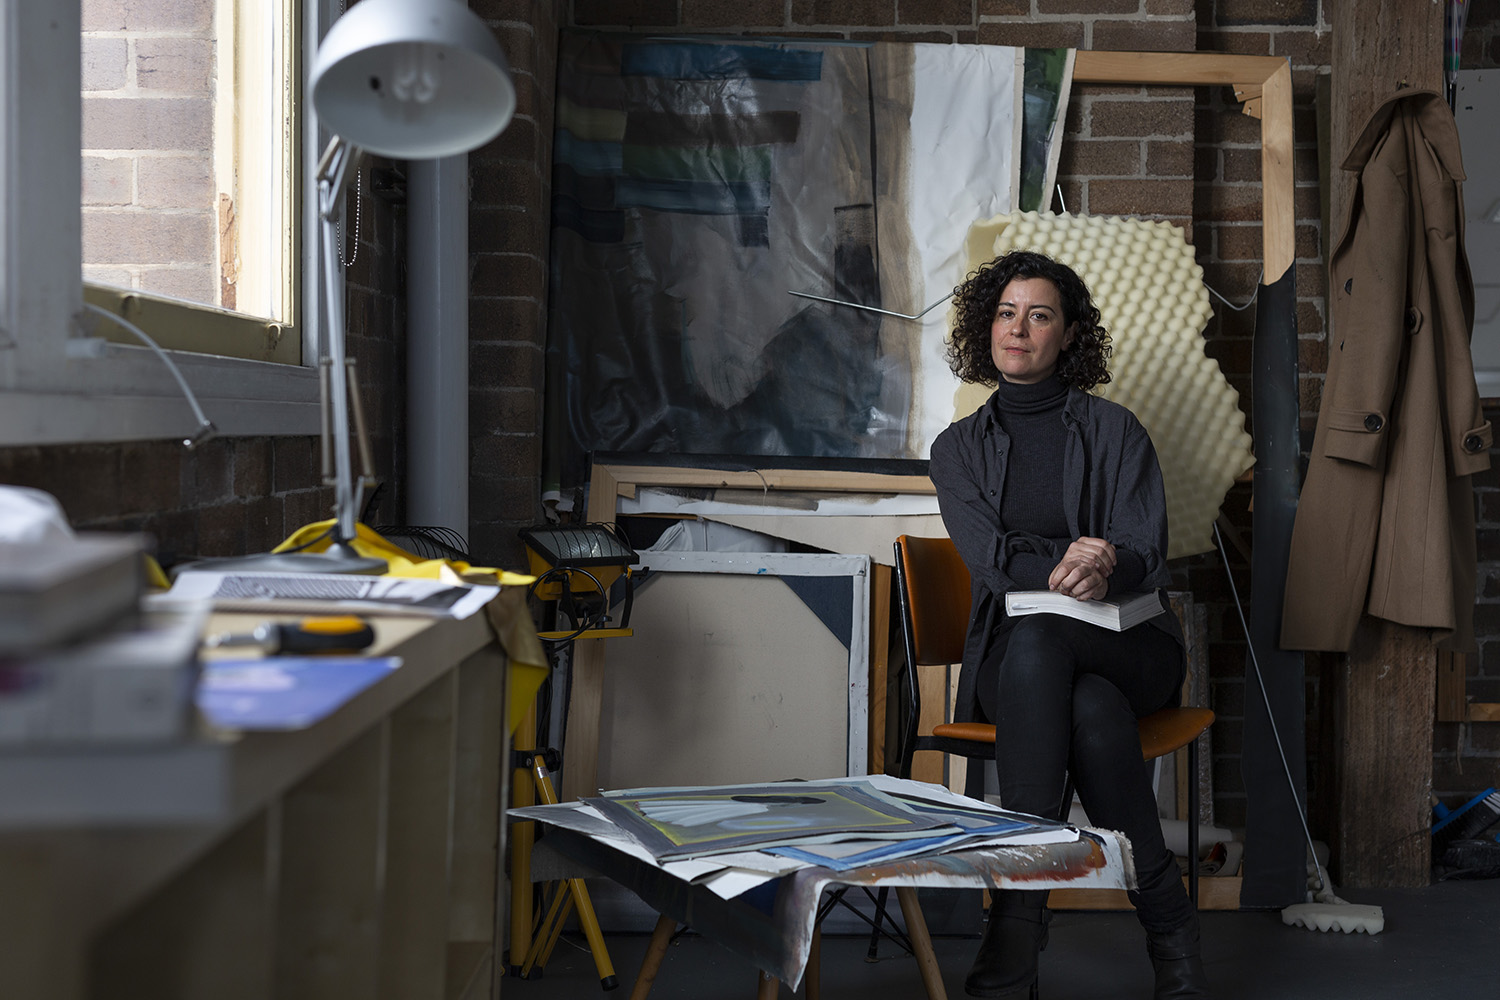 2019 One Year Studio Artist Jelena Telecki in her Artspace Studio. Photo Jessica Maurer